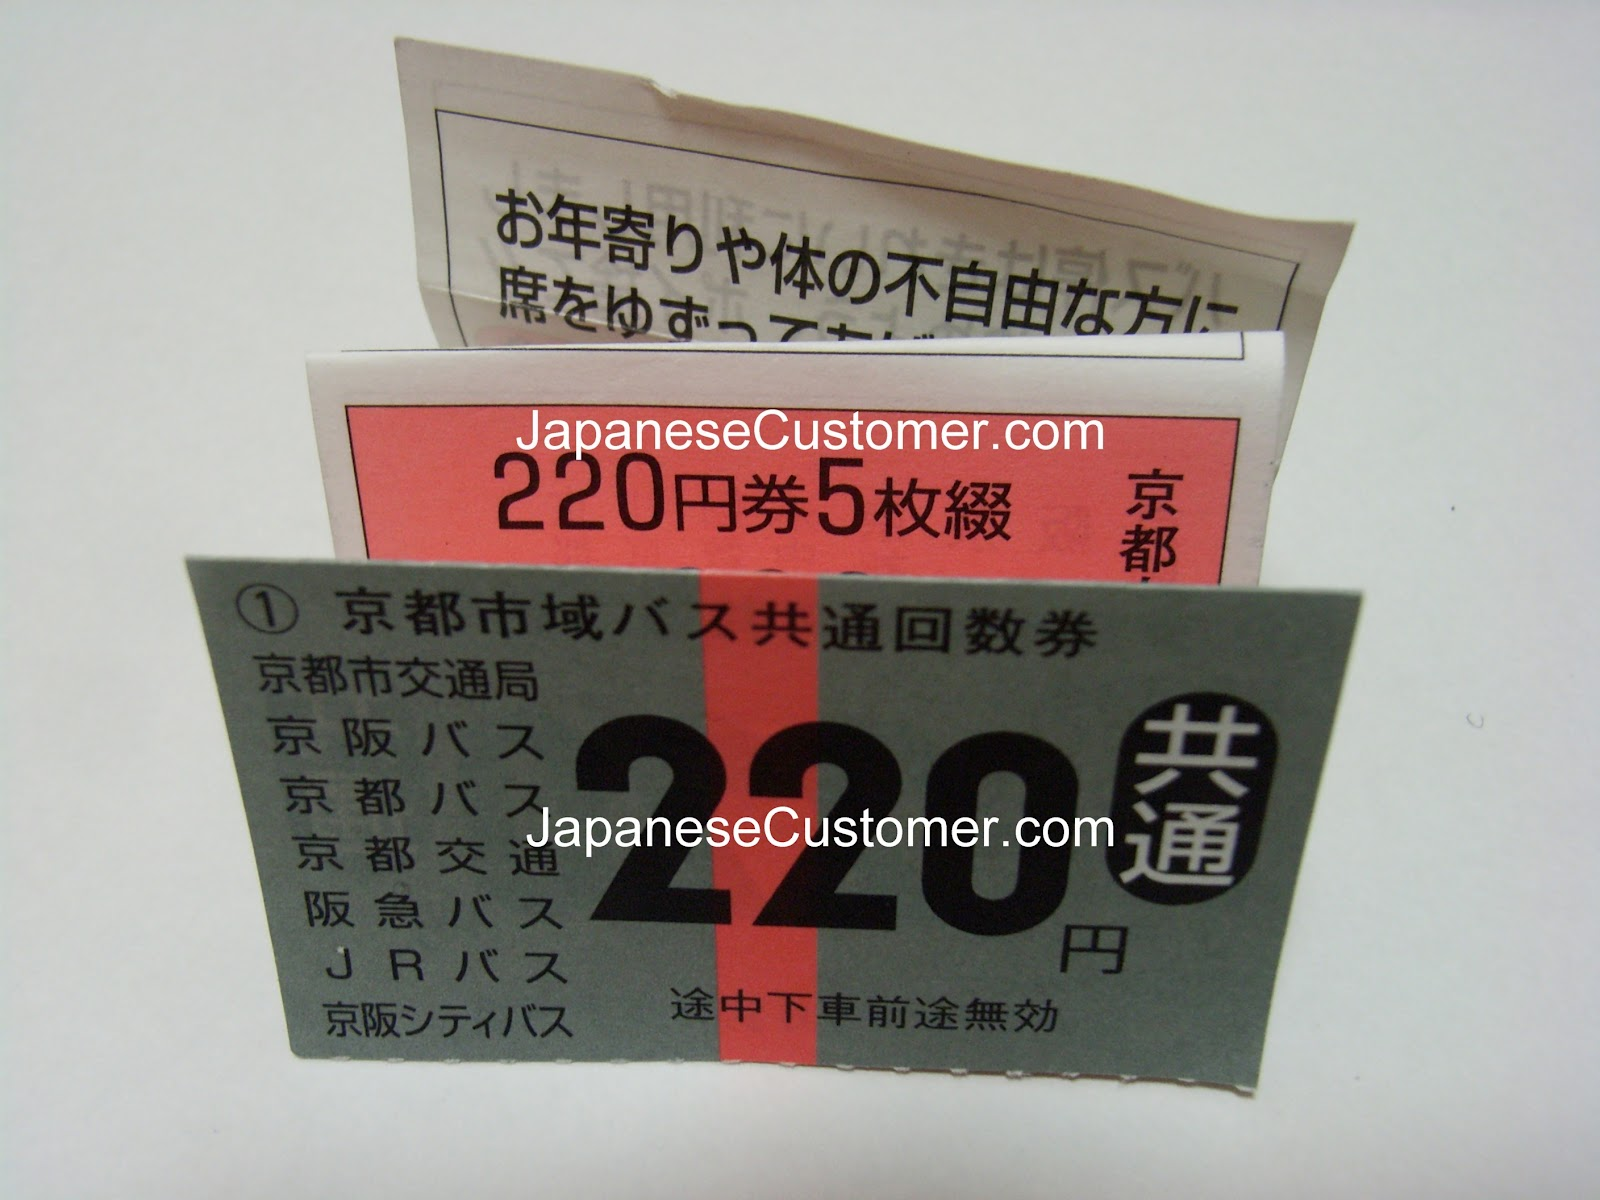 Kaisuken - discounted bus tickets used by japanese customers